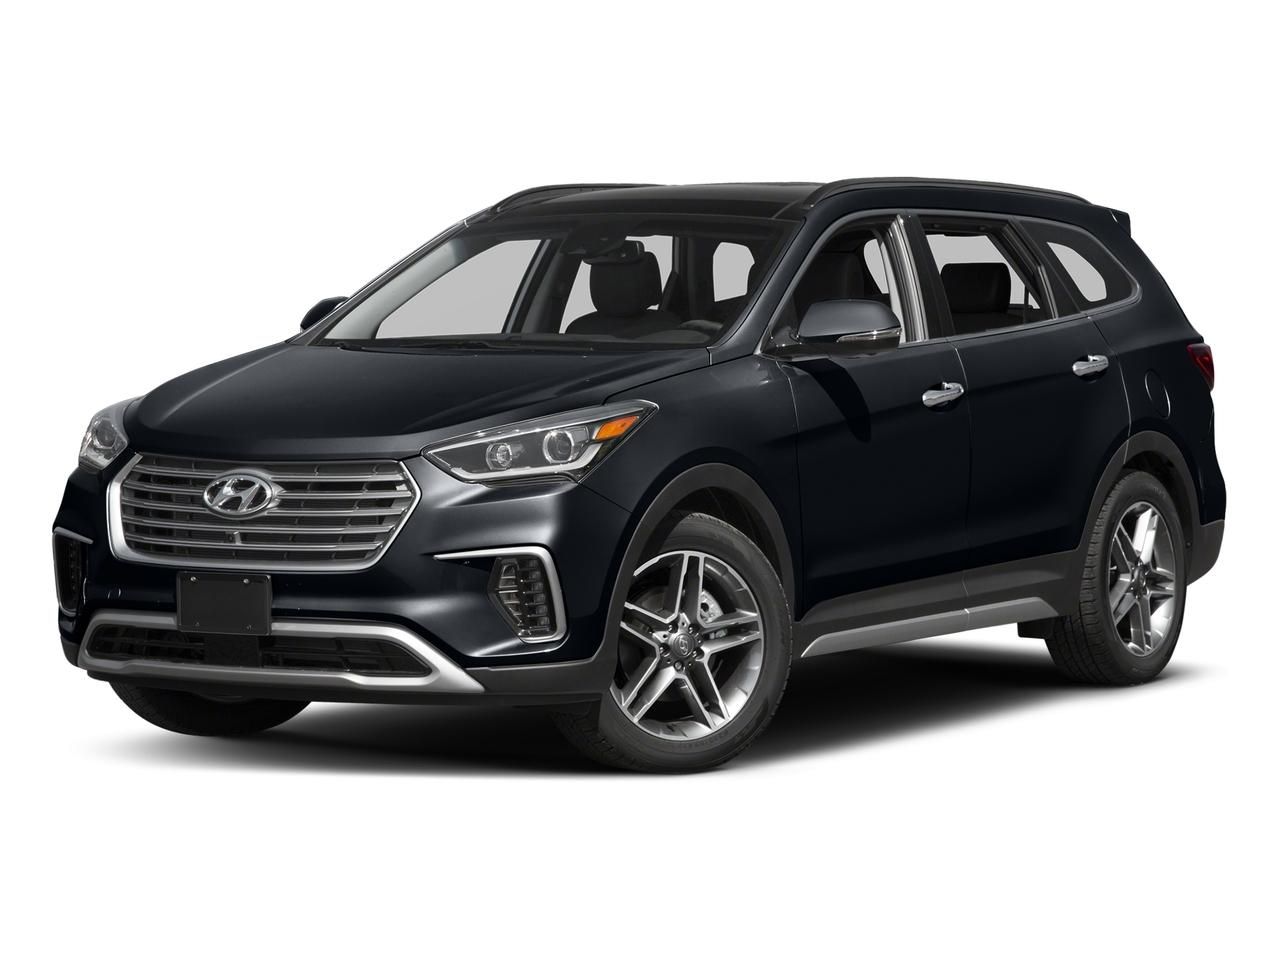 2017 Hyundai Santa Fe Vehicle Photo in Peoria, IL 61615